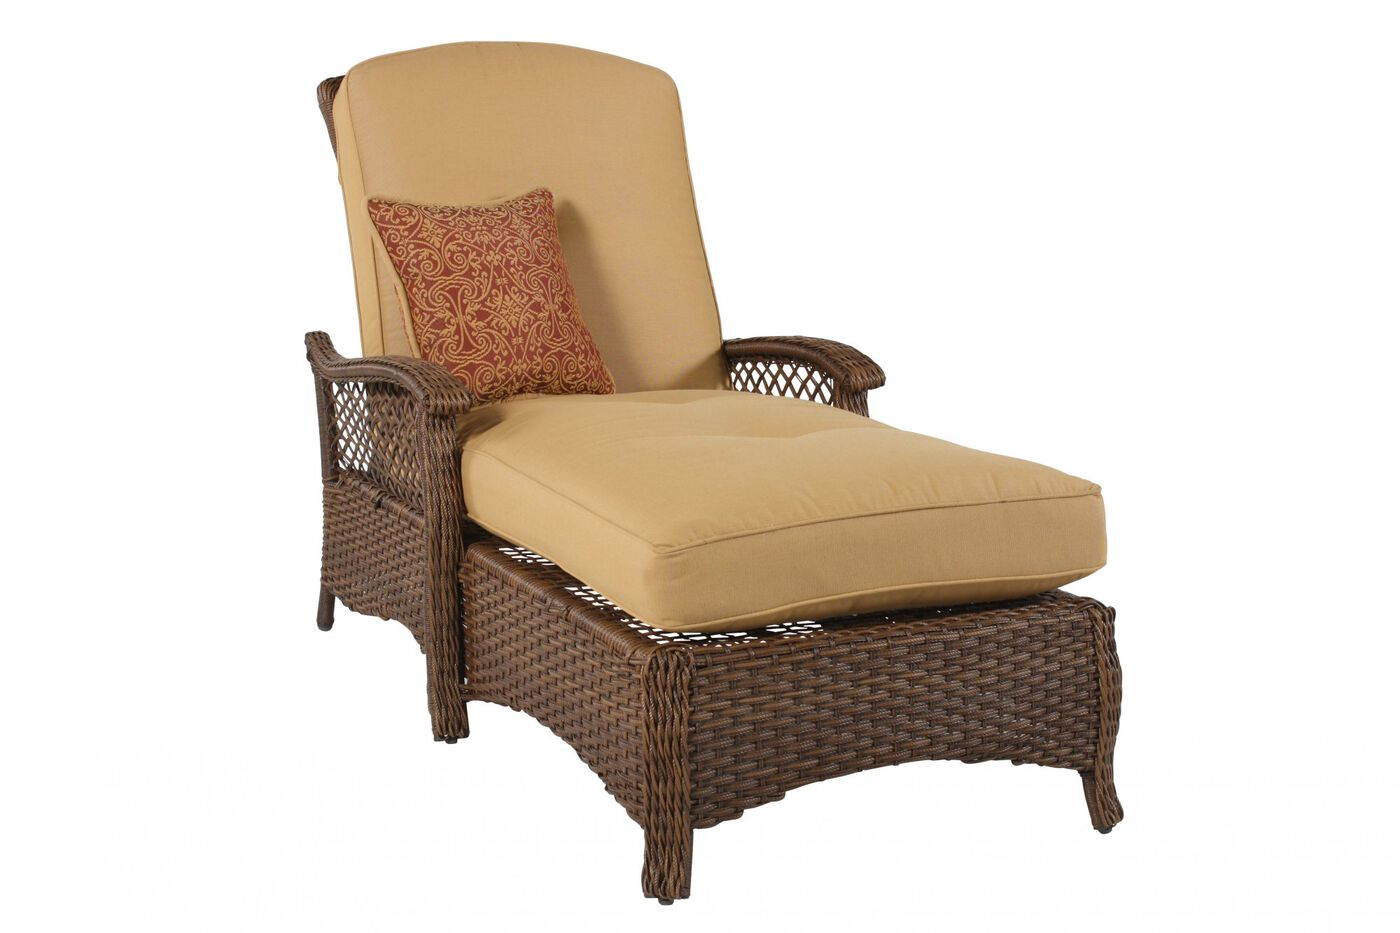 100 agio patio furniture chaise lounge toscana outdoor